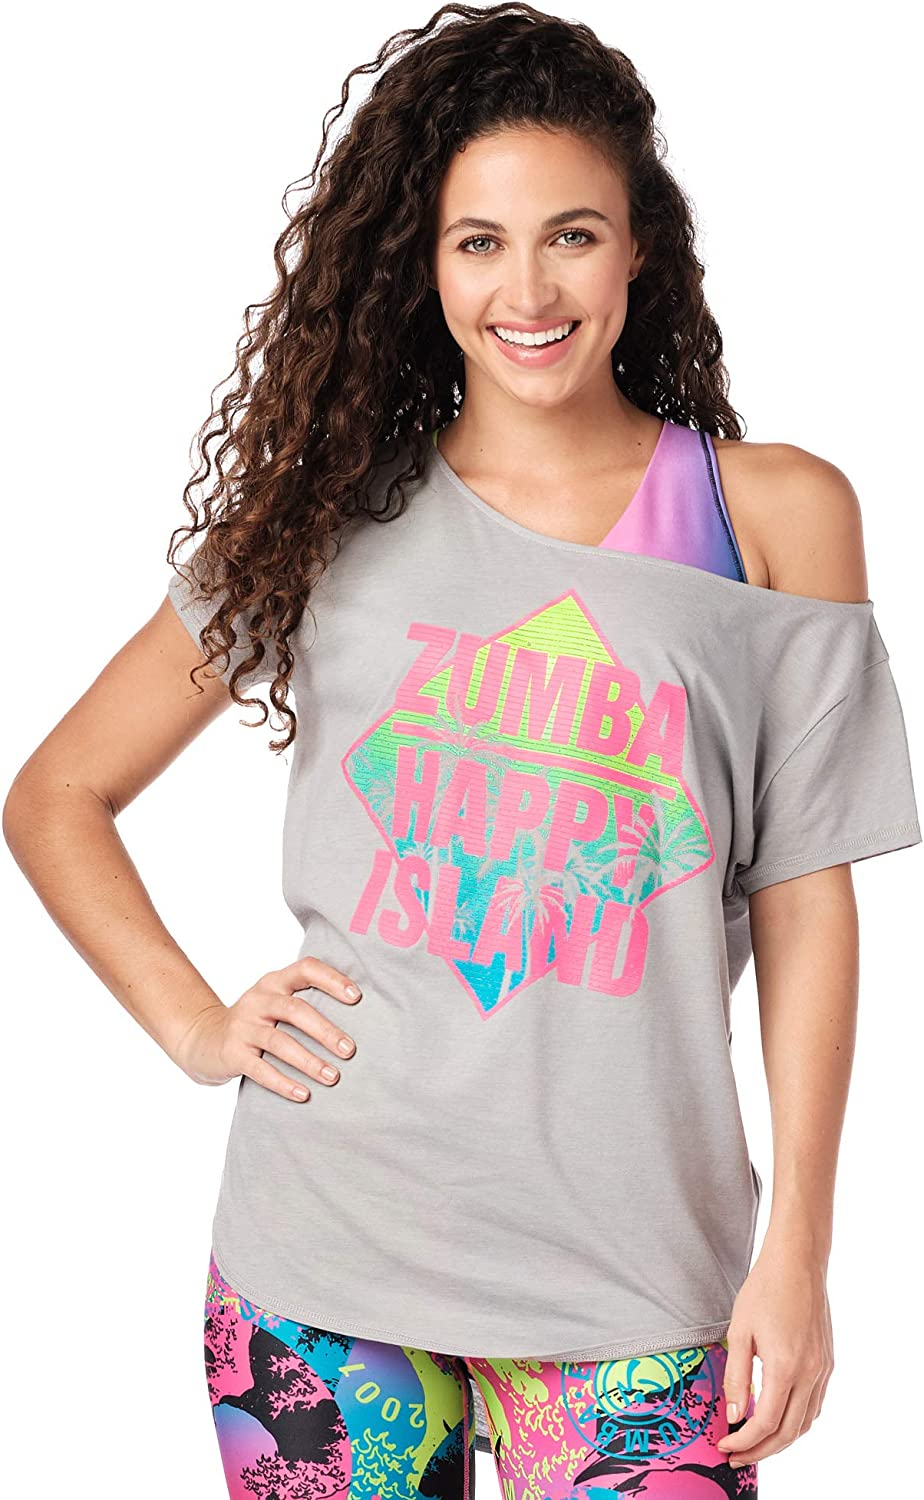 Zumba Loose Fitting Dance Fitness Graphic Tees Athletic Workout Top for Women